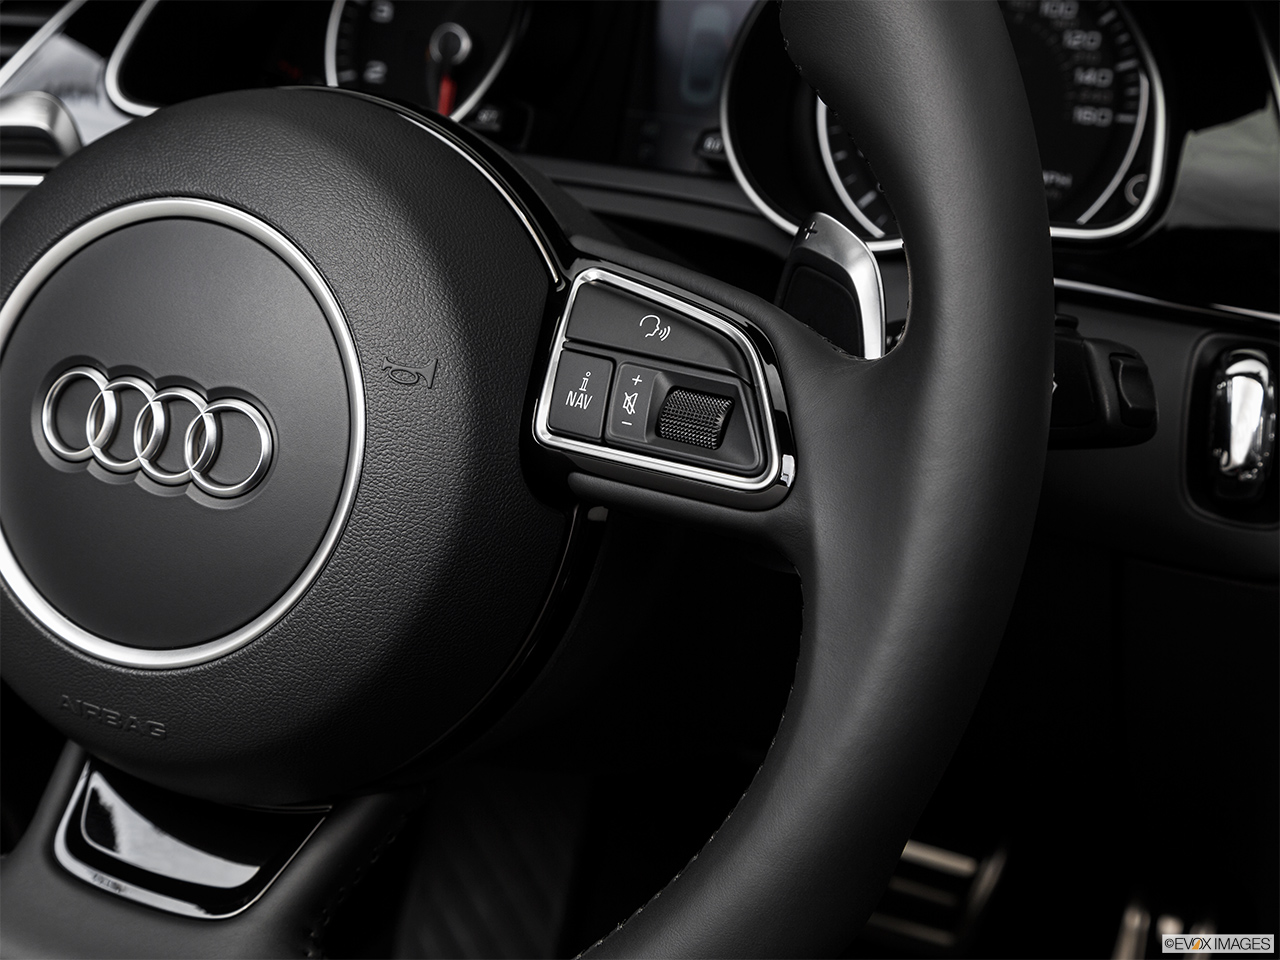 2017 Audi A5 Sport Cabriolet 2.0 TFSI Steering Wheel Controls (Right Side)